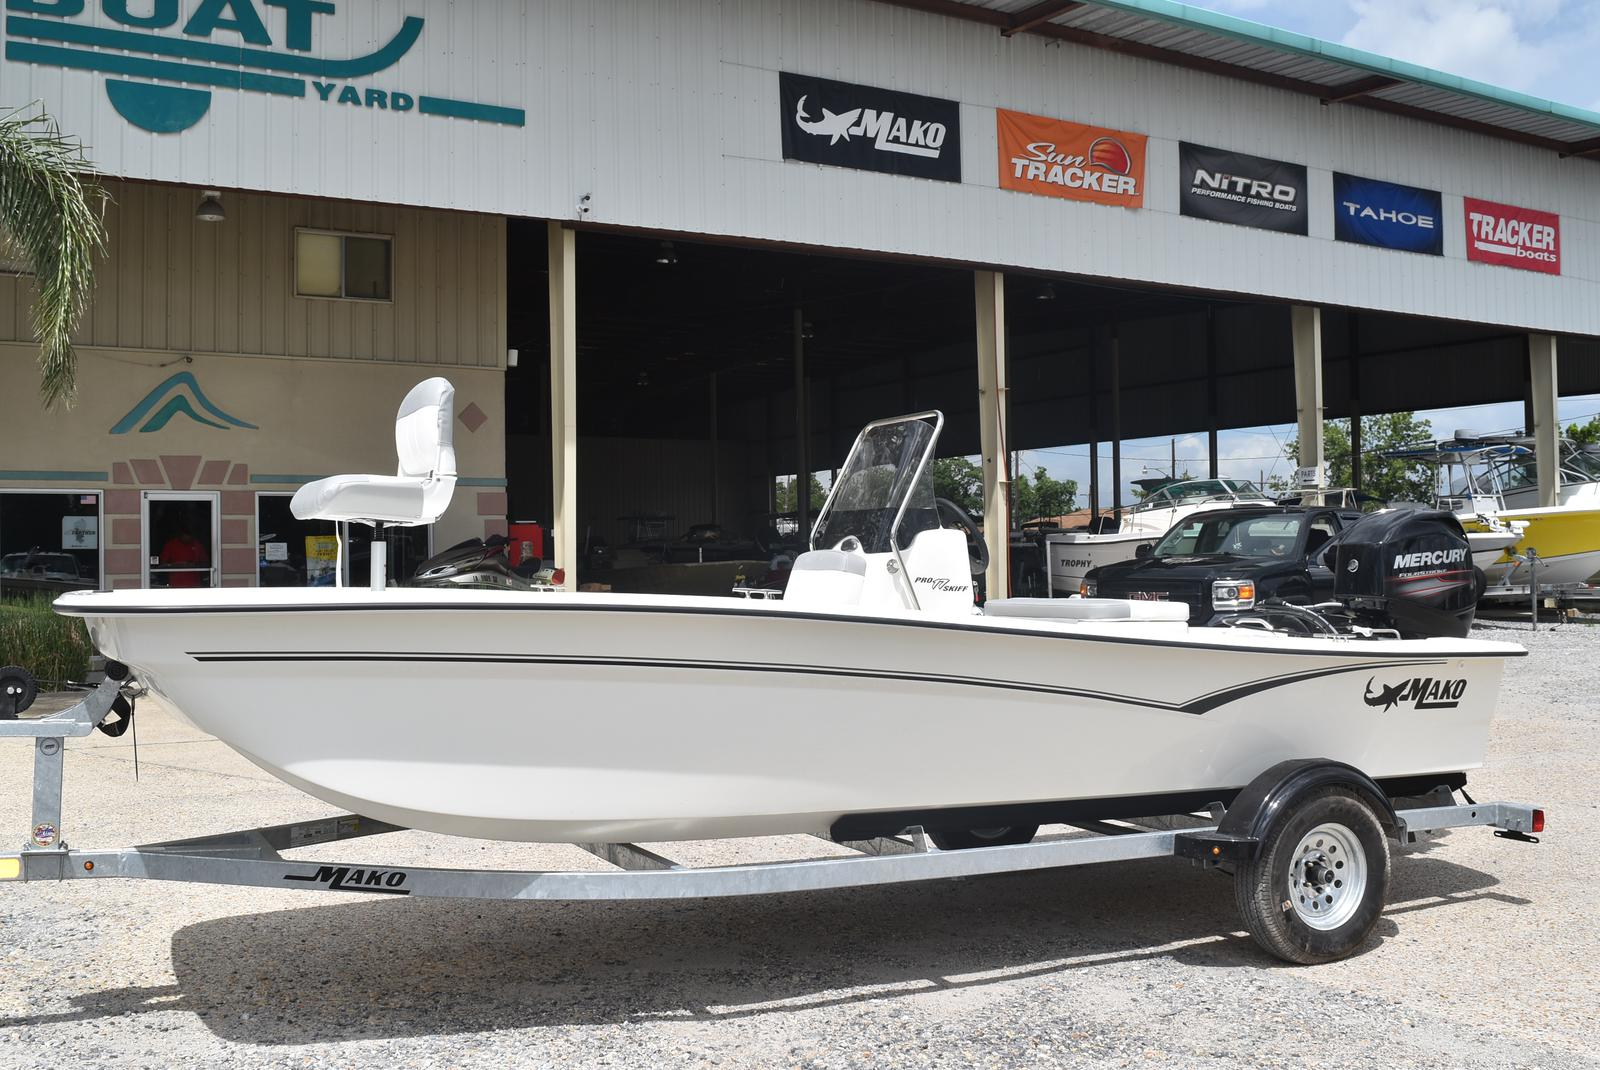 2020 Mako boat for sale, model of the boat is Pro Skiff 17, 75 ELPT & Image # 120 of 702